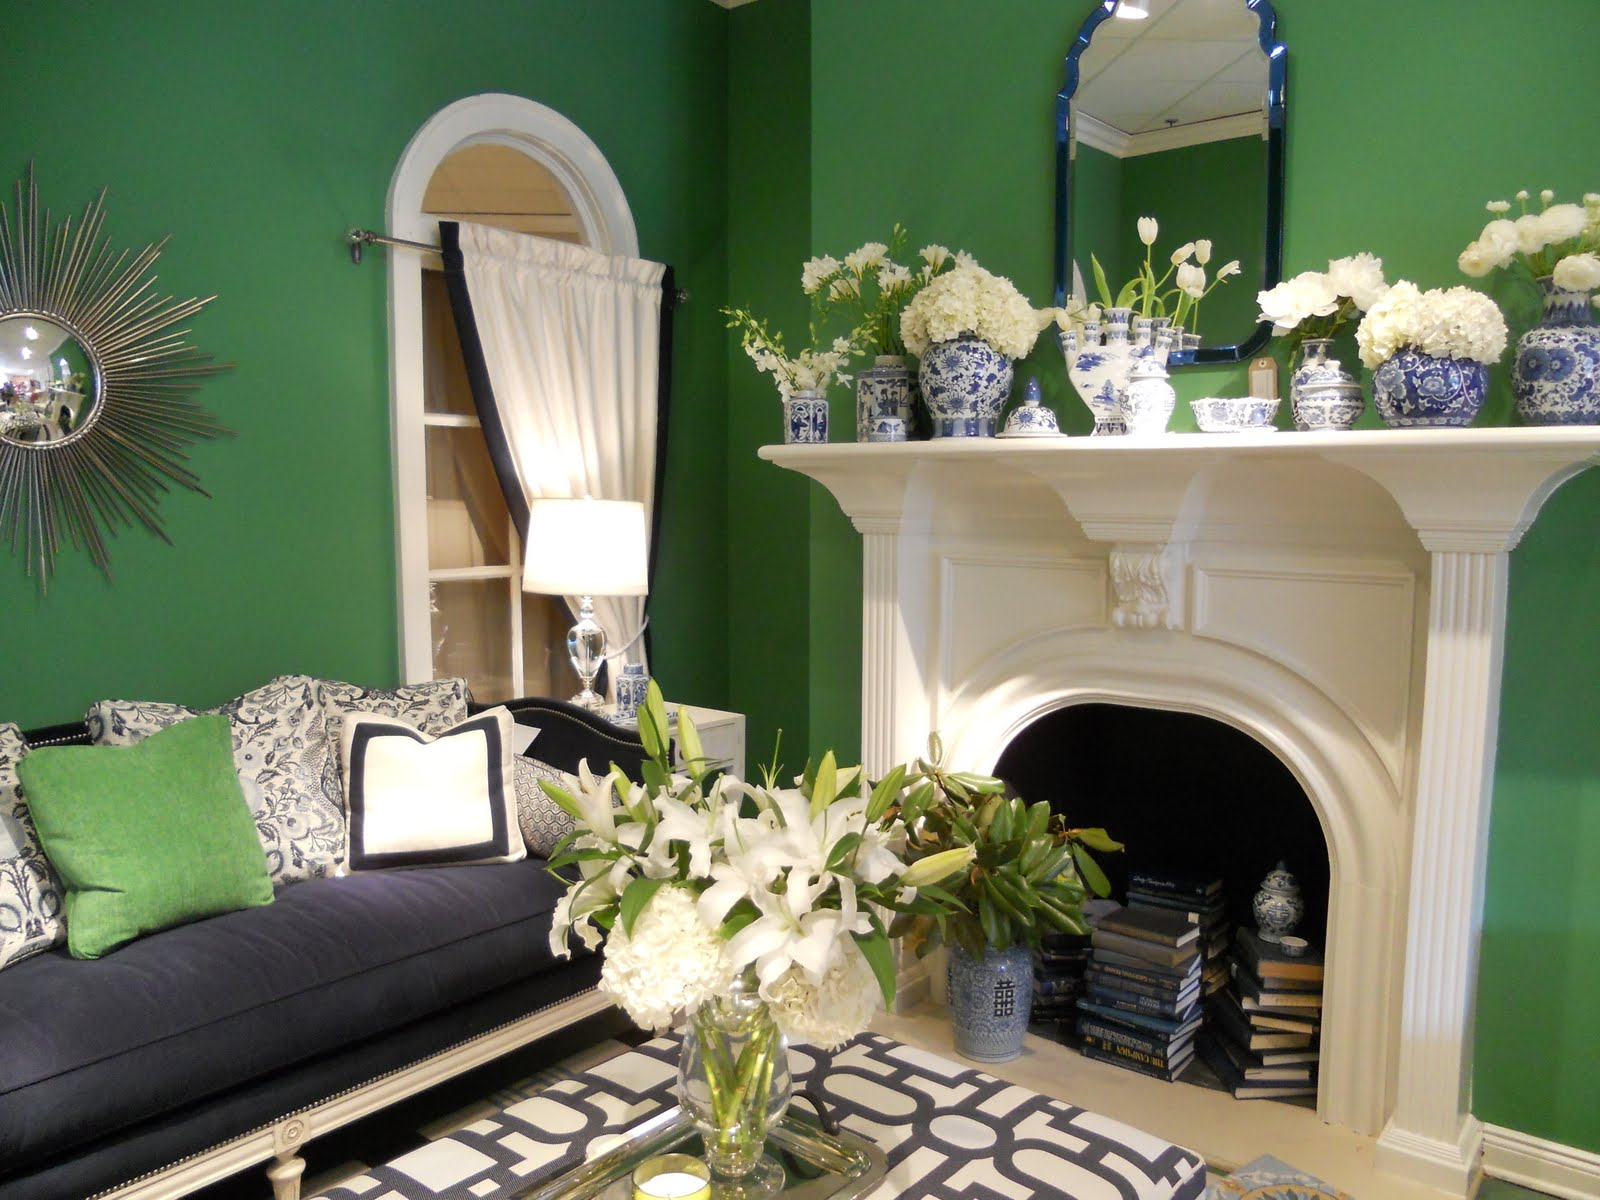 Interiors etc details april 2012 - Pretty green rooms ...